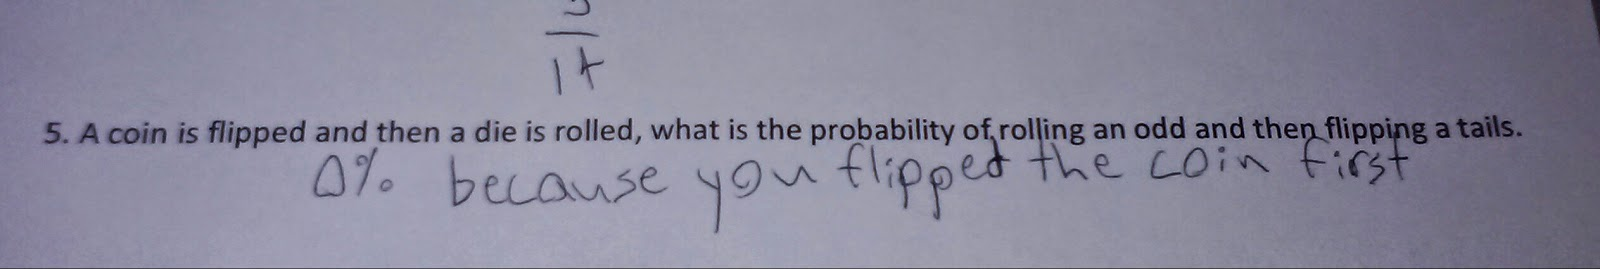 Genius Answers Are Ridiculously Hilarious And Wrong - 38 test answers totally wrong 100 genius